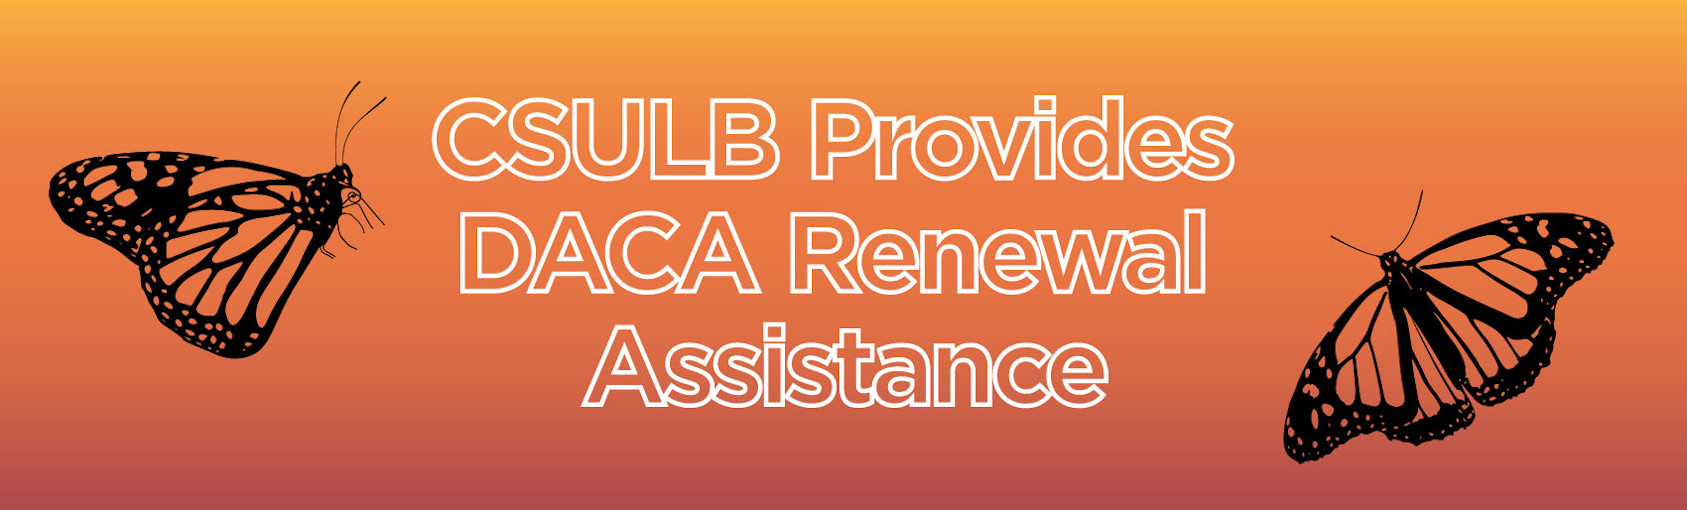 CSULB Provides DACA Renewal Assistance